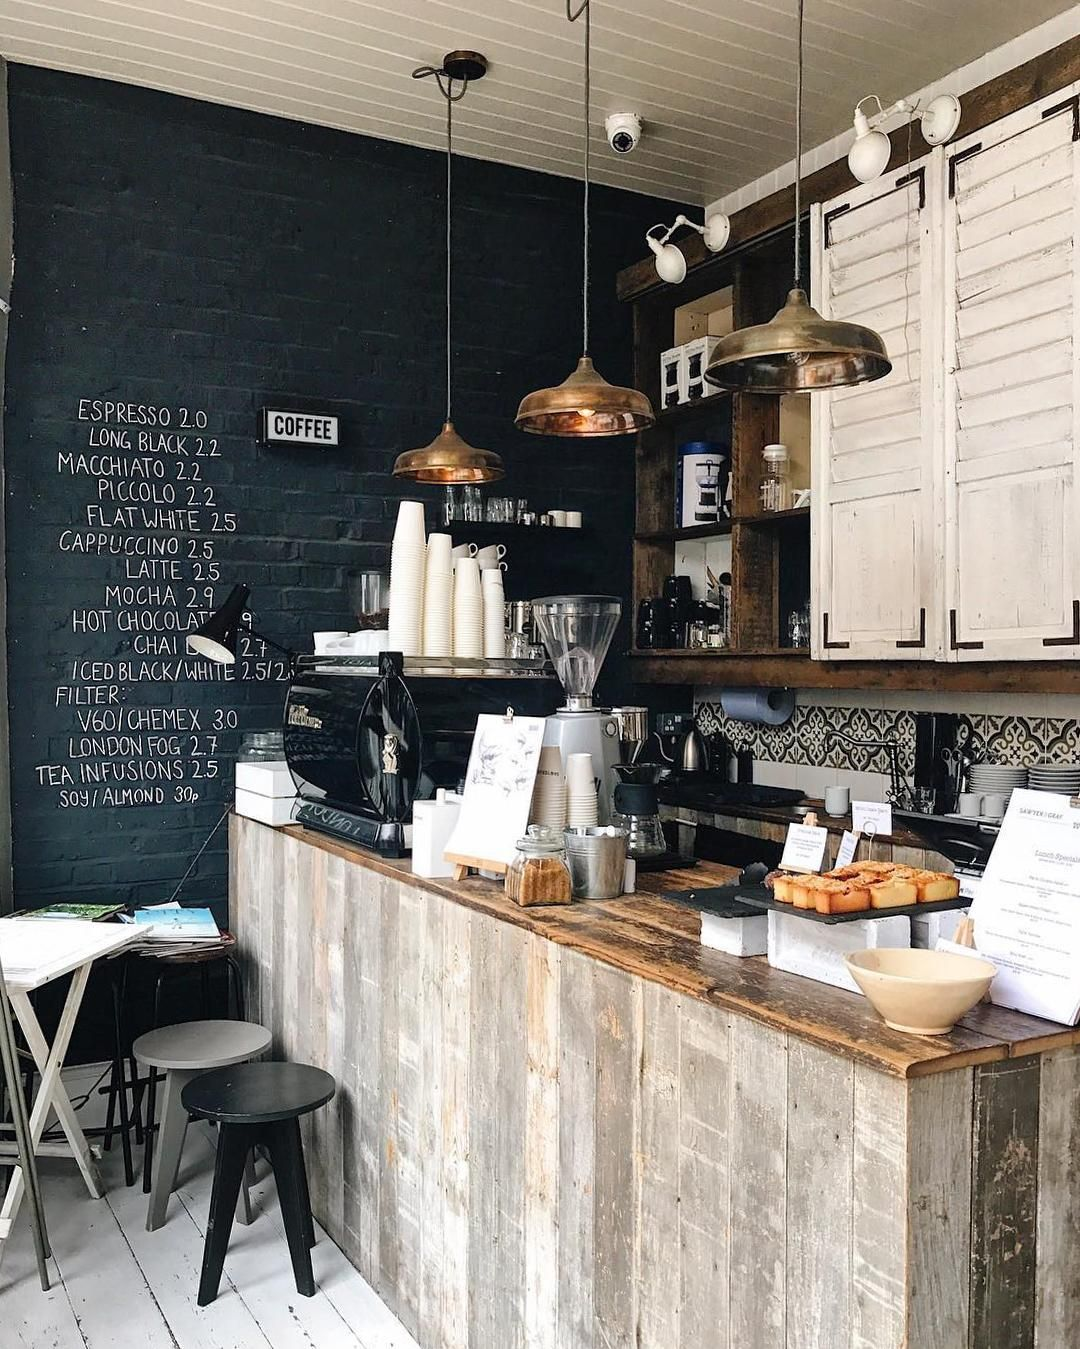 25 Of London S Most Buzz Worthy Coffee Shops Coffee Shop Coffee Shop Design London Coffee Shop